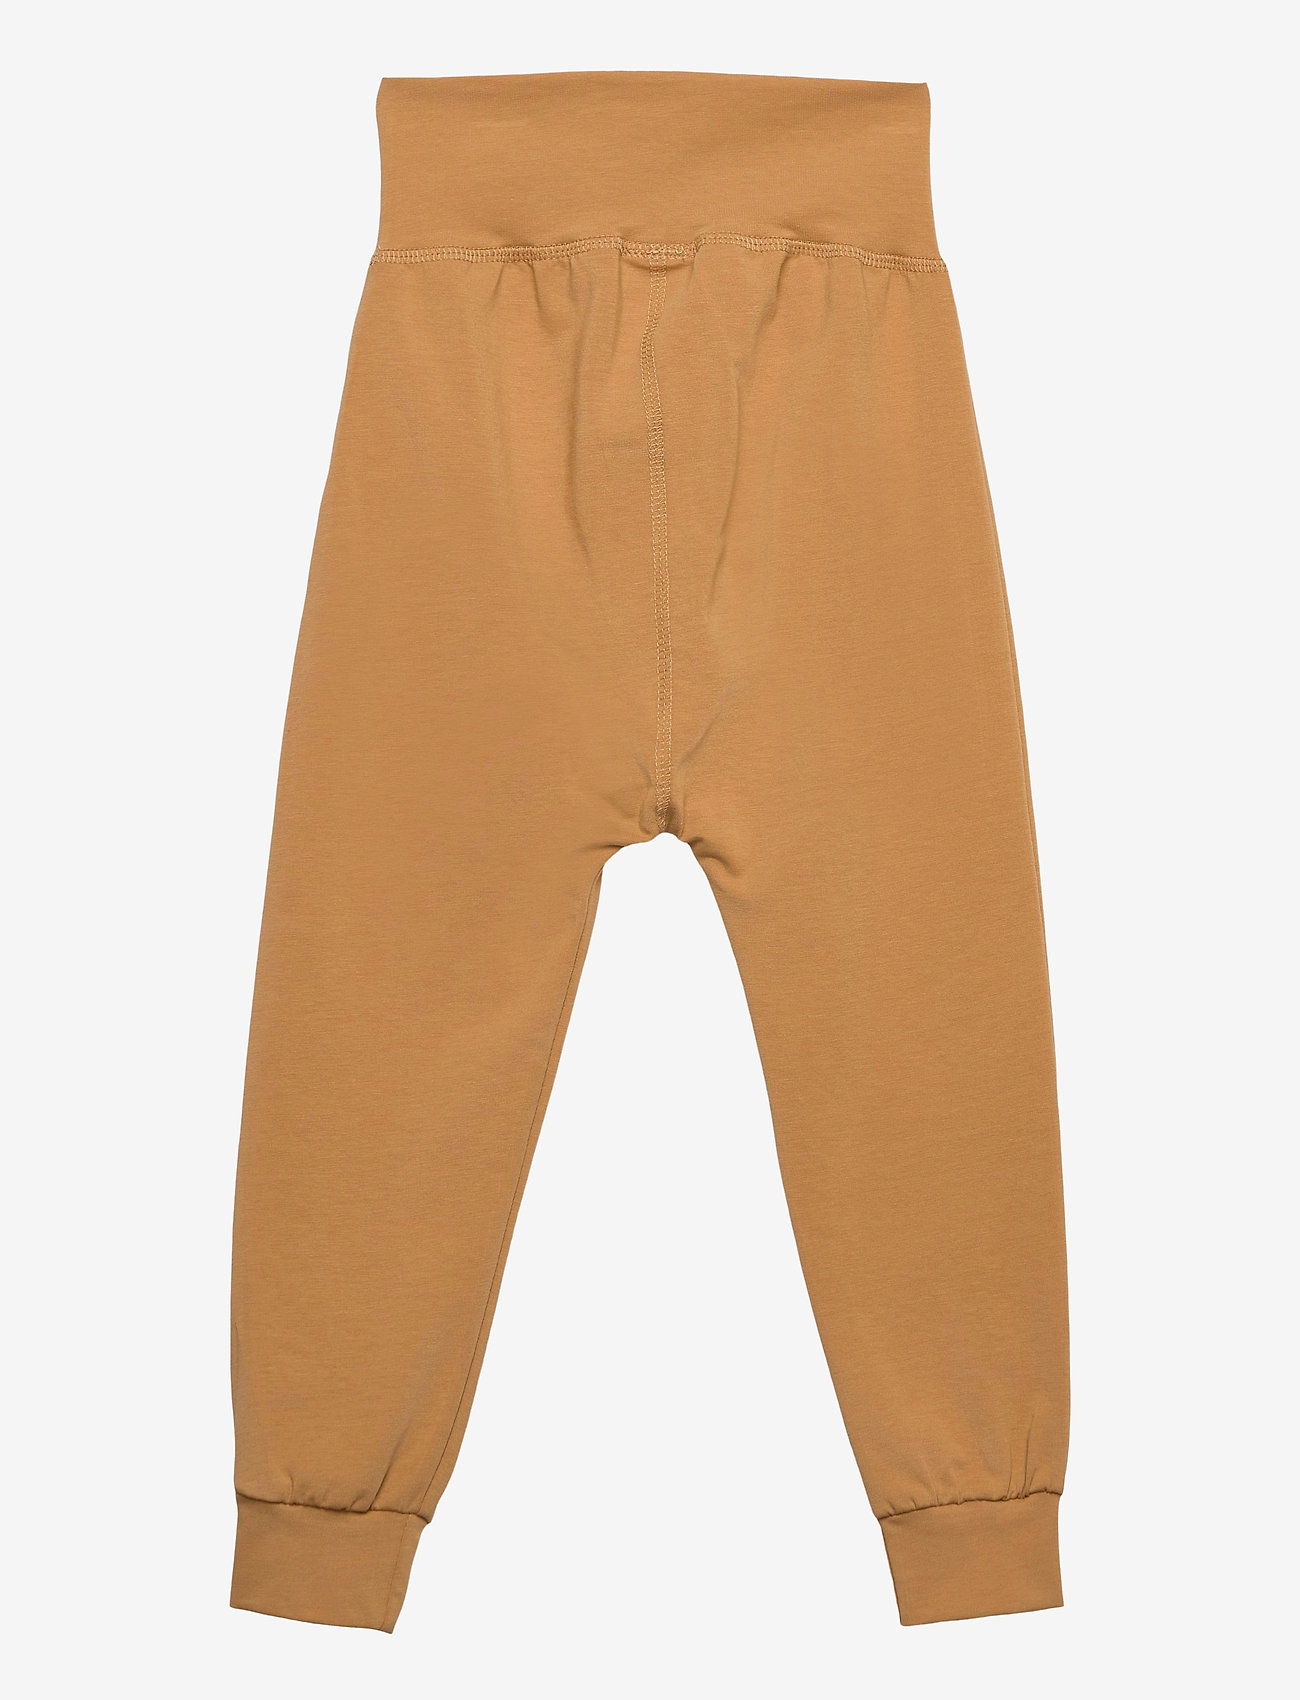 Müsli by Green Cotton - Cozy me pants - trousers - toffee - 1